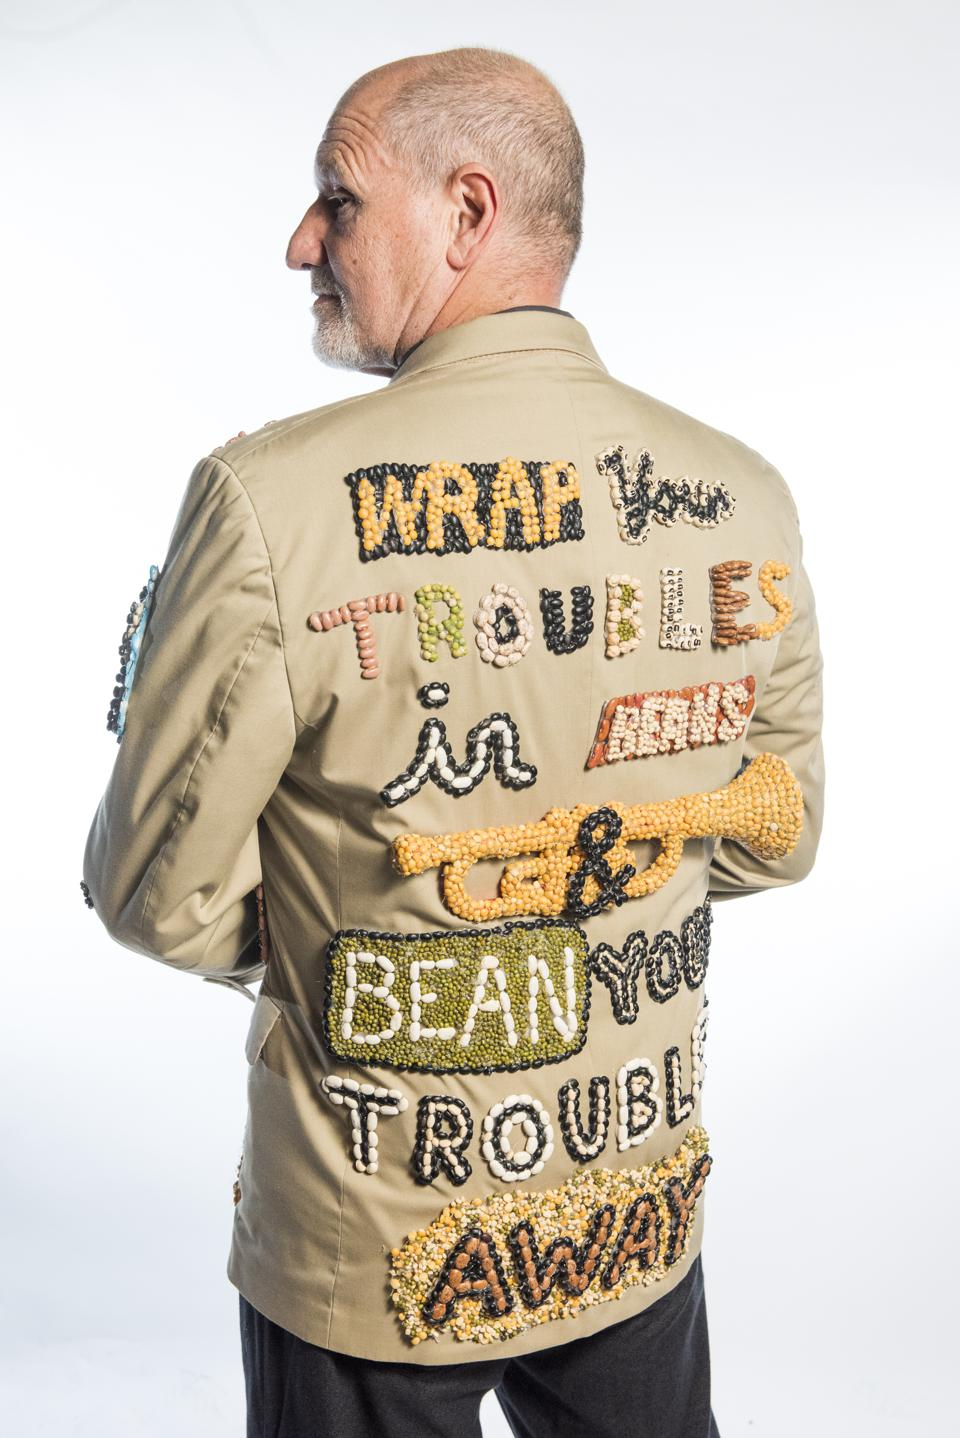 Howard Turoff, a member of the Krewe of Red Beans